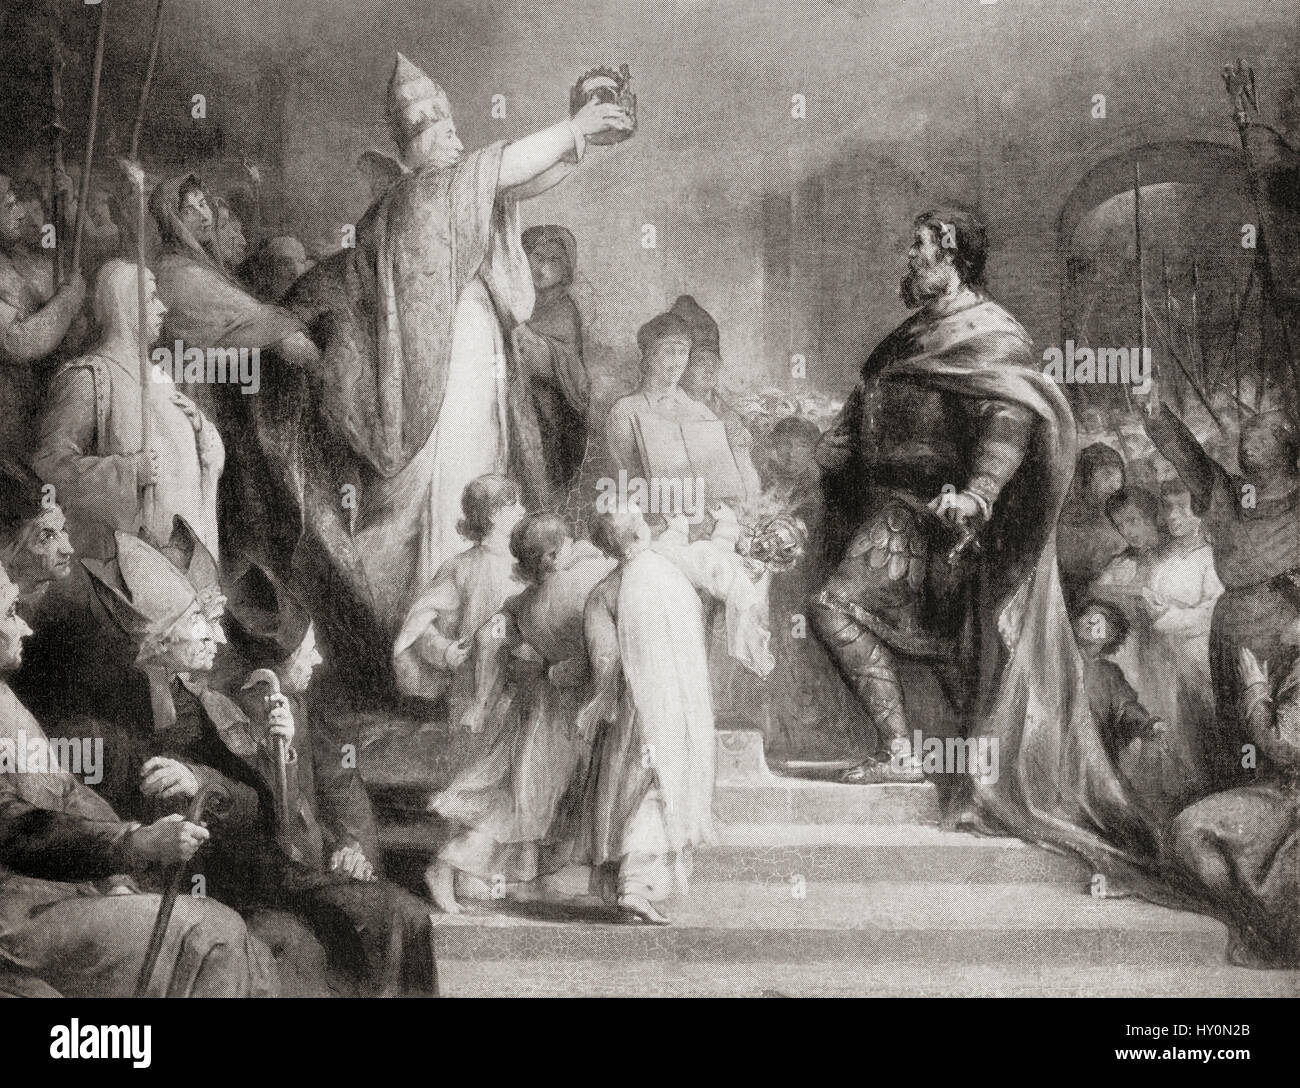 The coronation of Charlemagne as Roman Emperor in 800 by Pope Leo III on Christmas Day, Old St. Peter's Basilica. - Stock Image